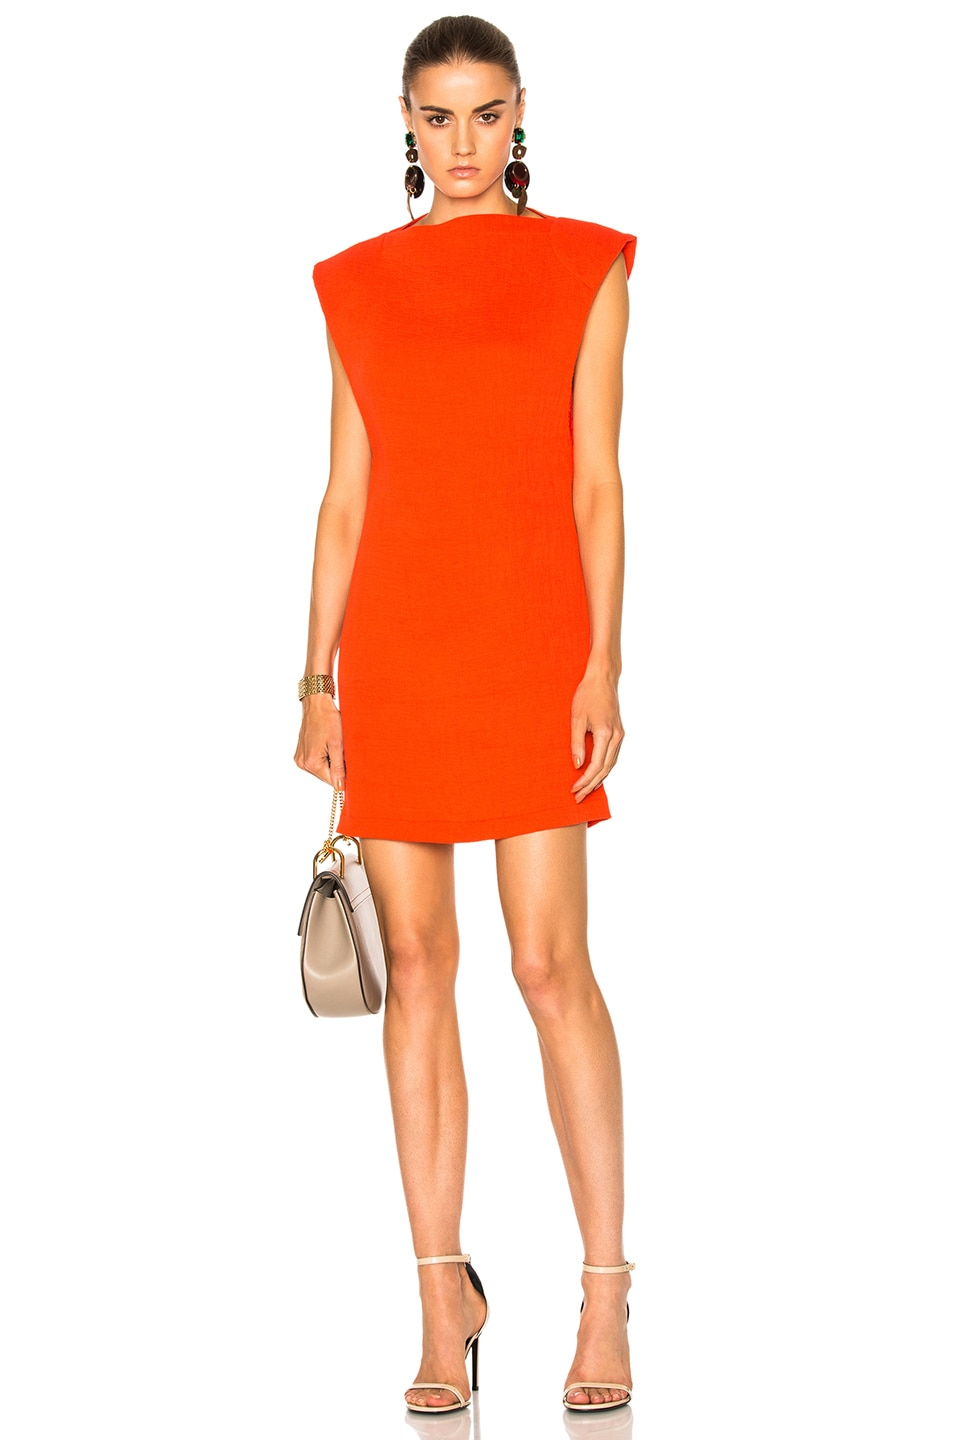 Image 1 of Kate Sylvester Roxanne Mini Dress in Poppy